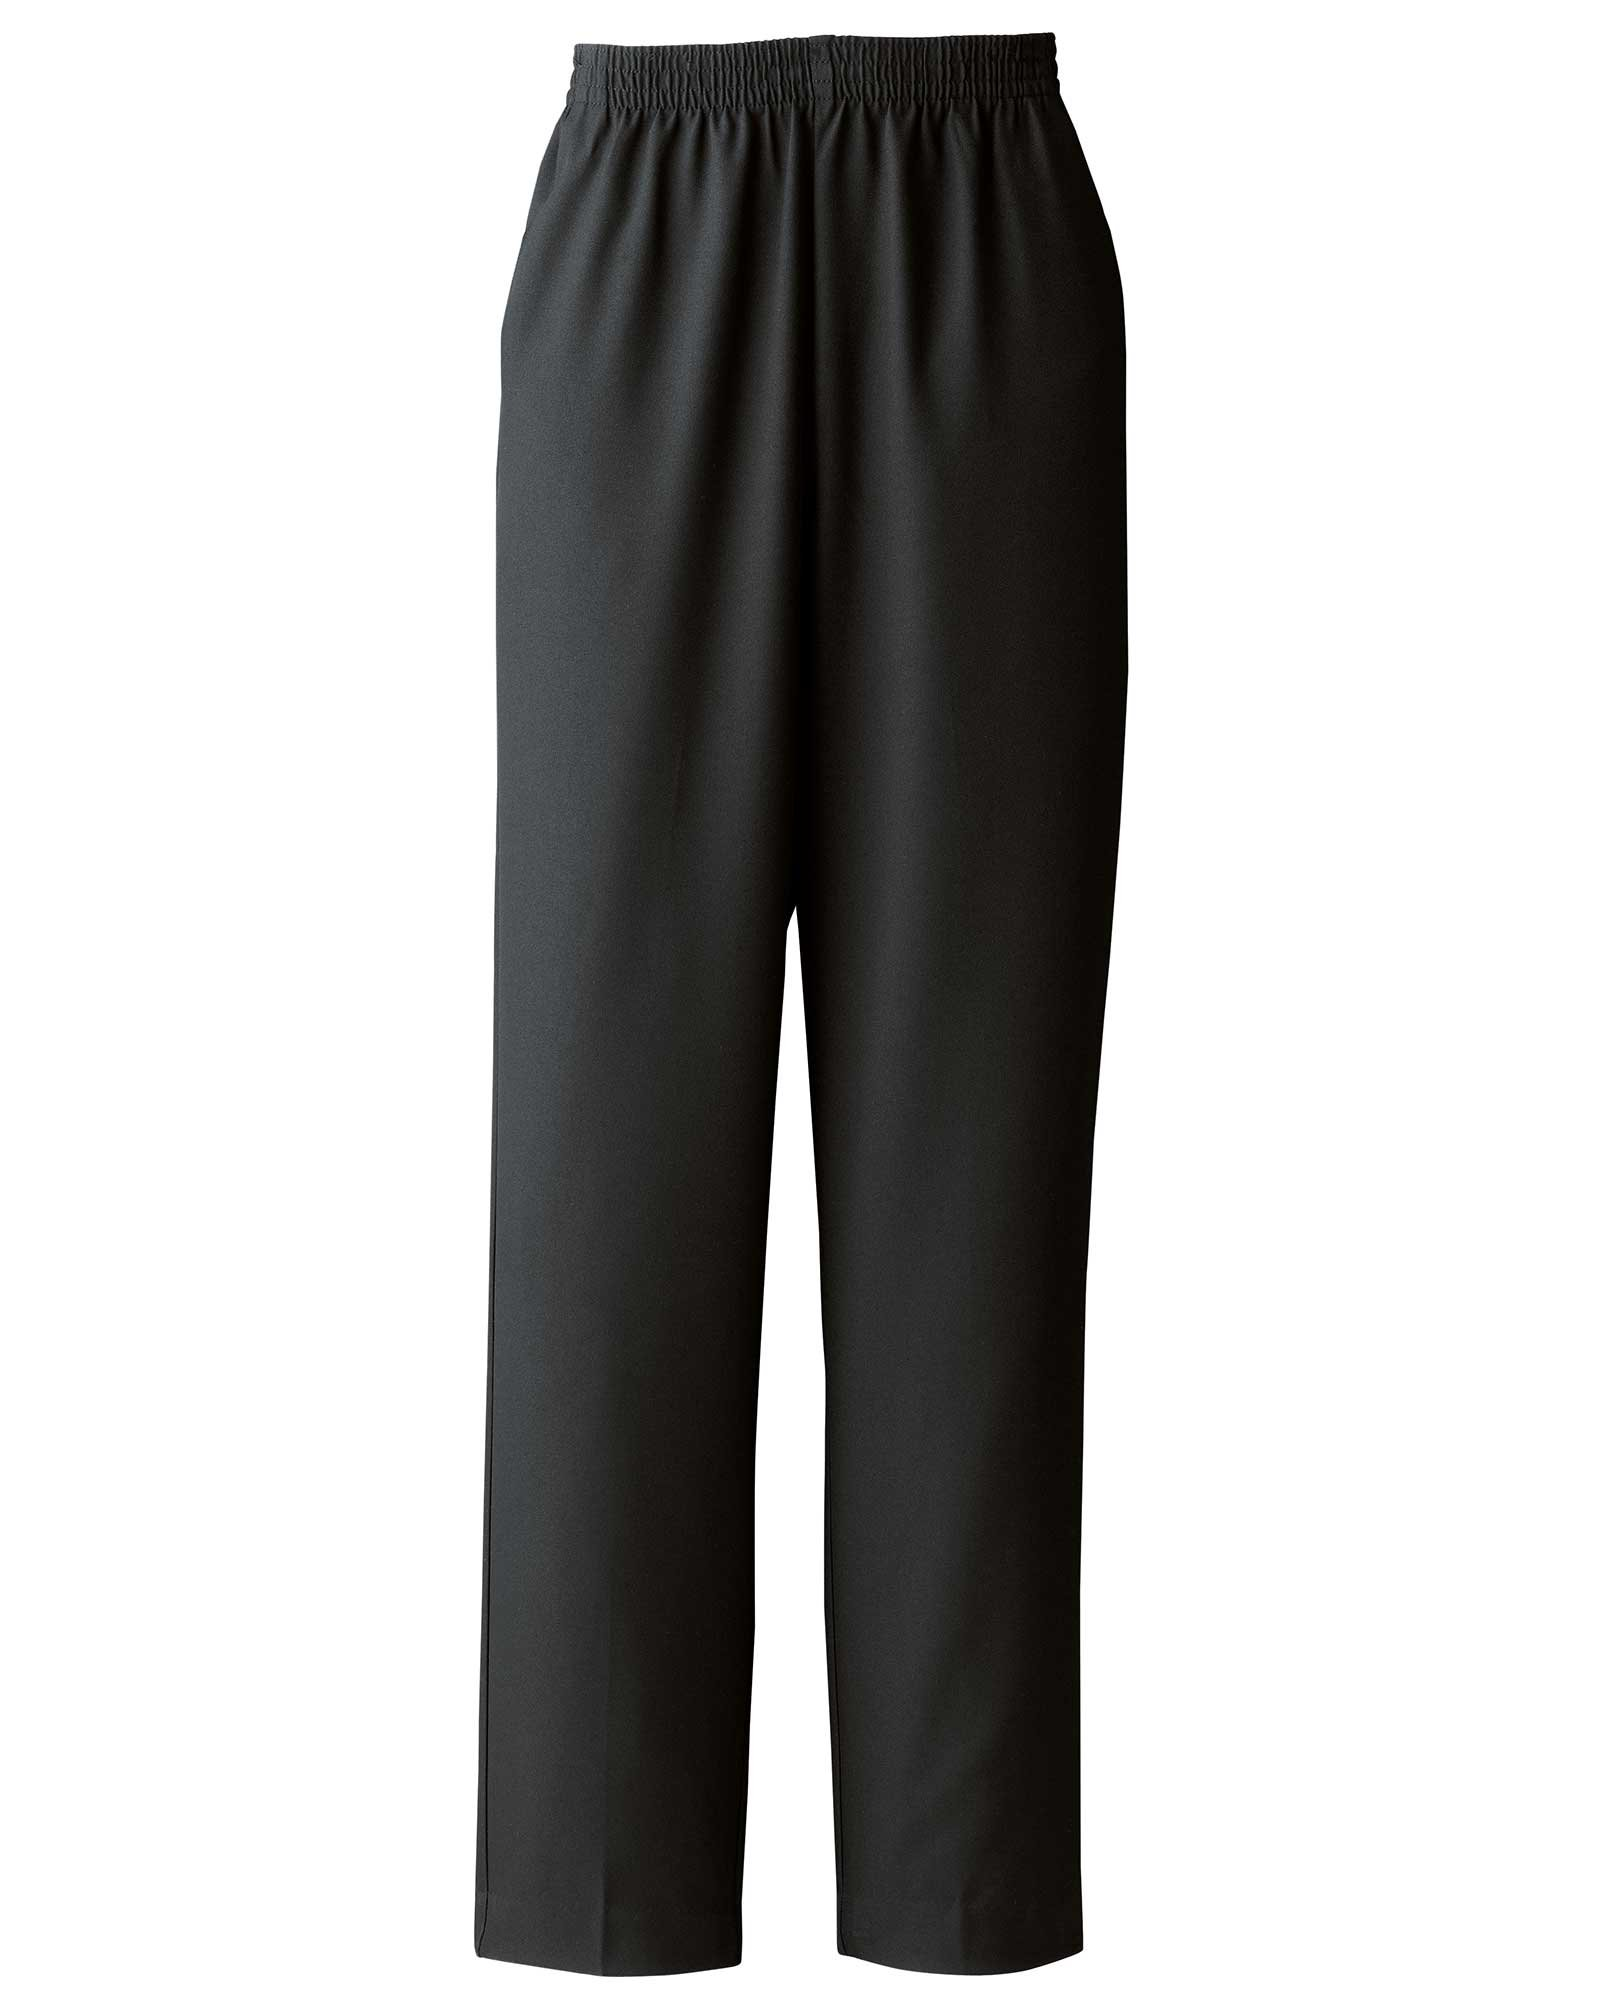 Donnkenny Elastic-Waist Gabardine Pull-On Pants, Black, 14